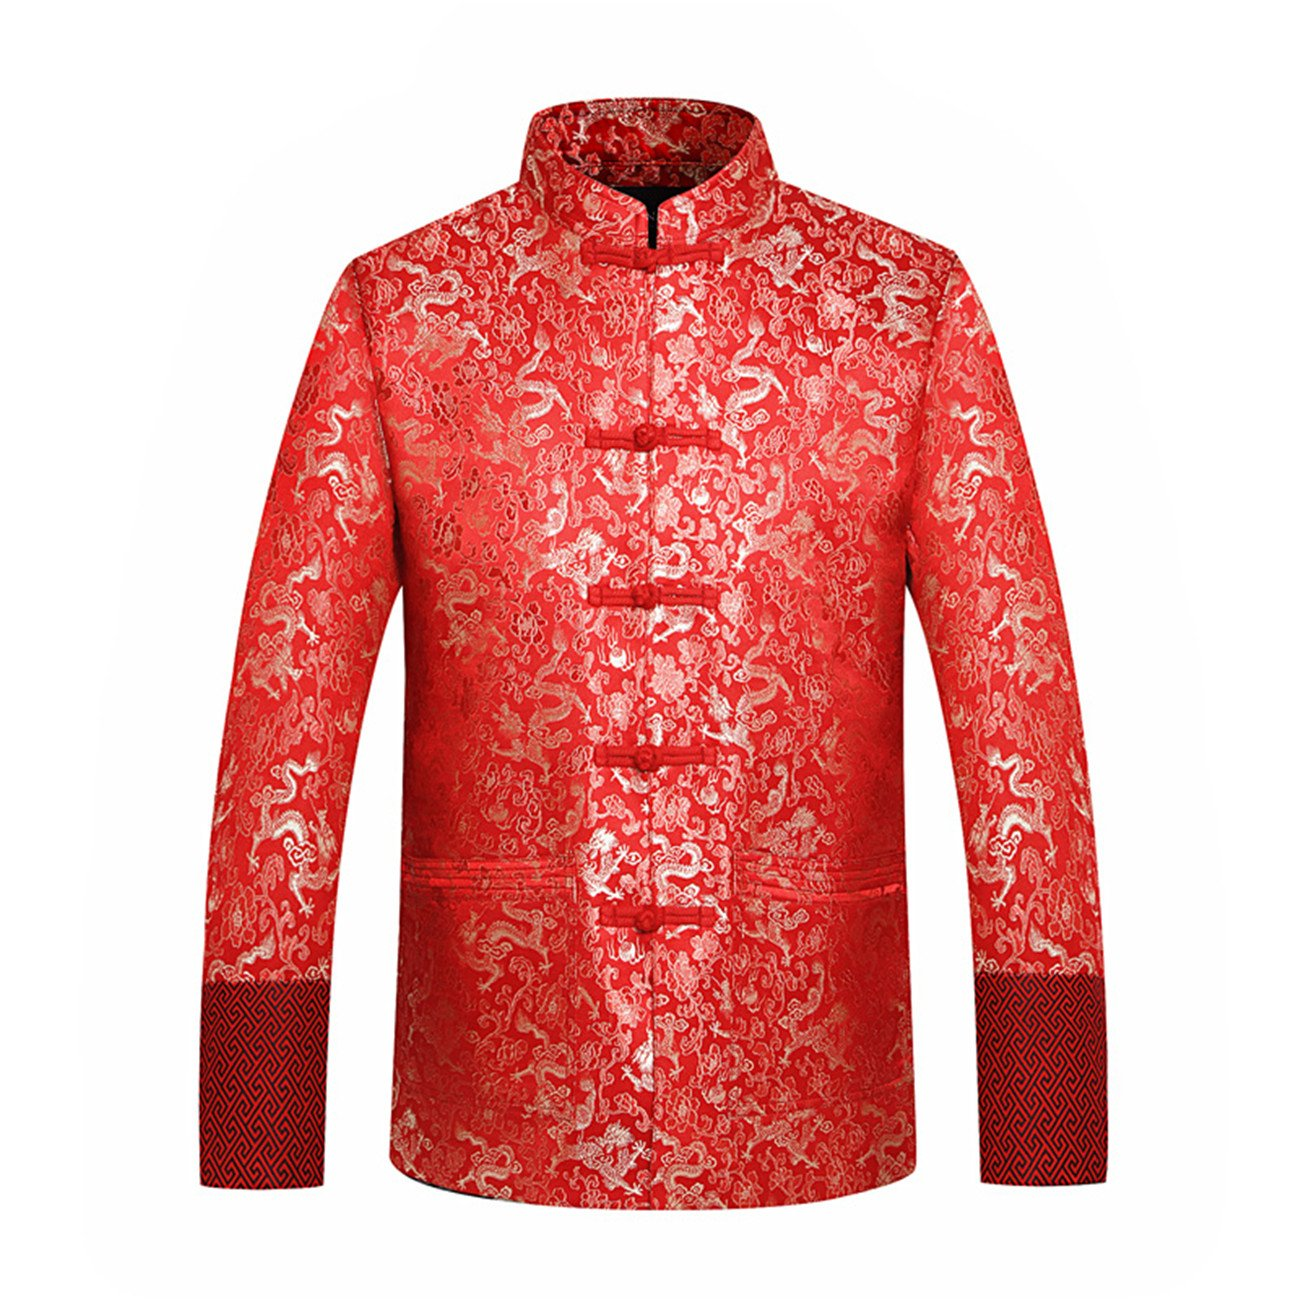 Men's O-neck Long Sleeve Stand Collar Chinese Dragon Silk Disk Buckle Embroidery TangJackets(XL,red) by JJCat